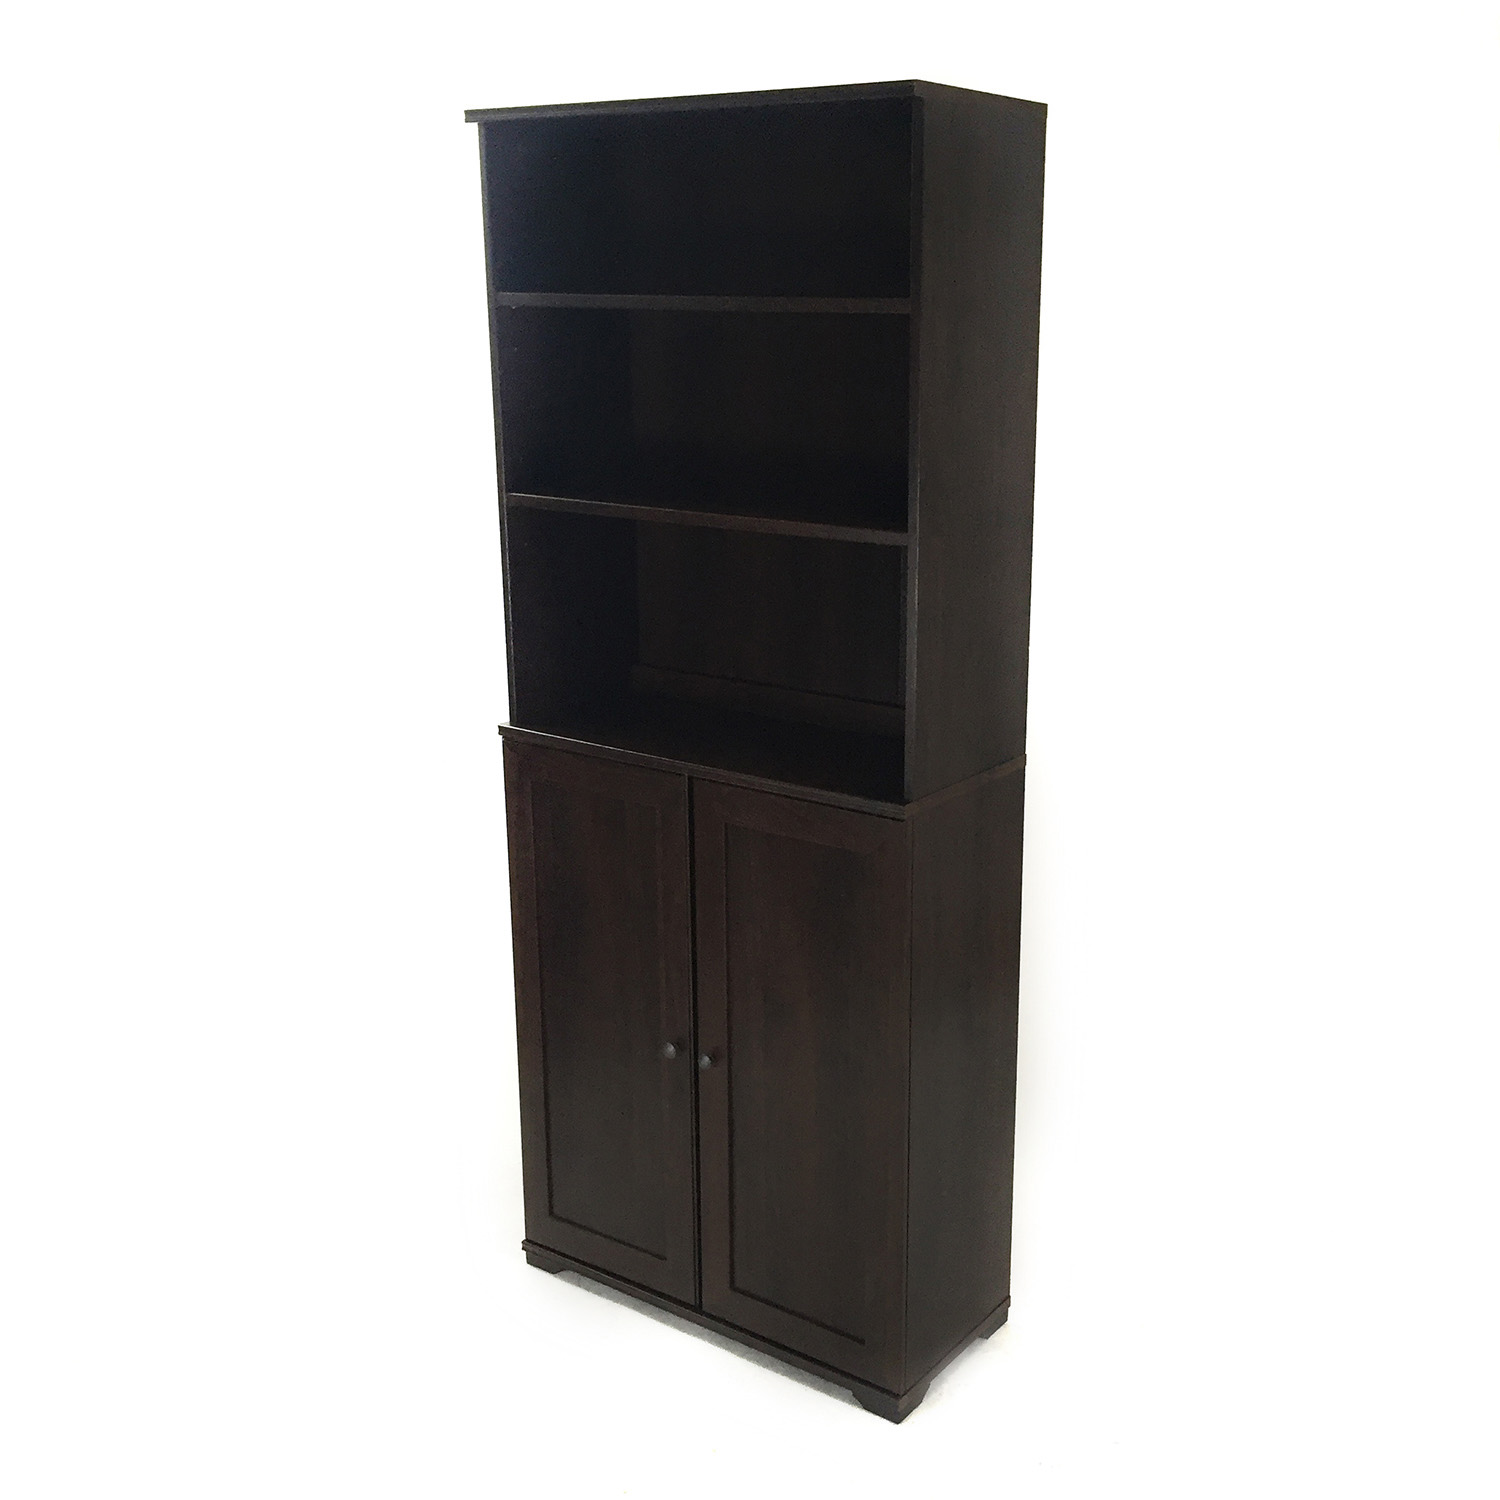 76 Off Ikea Cabinet With Book Shelves Storage